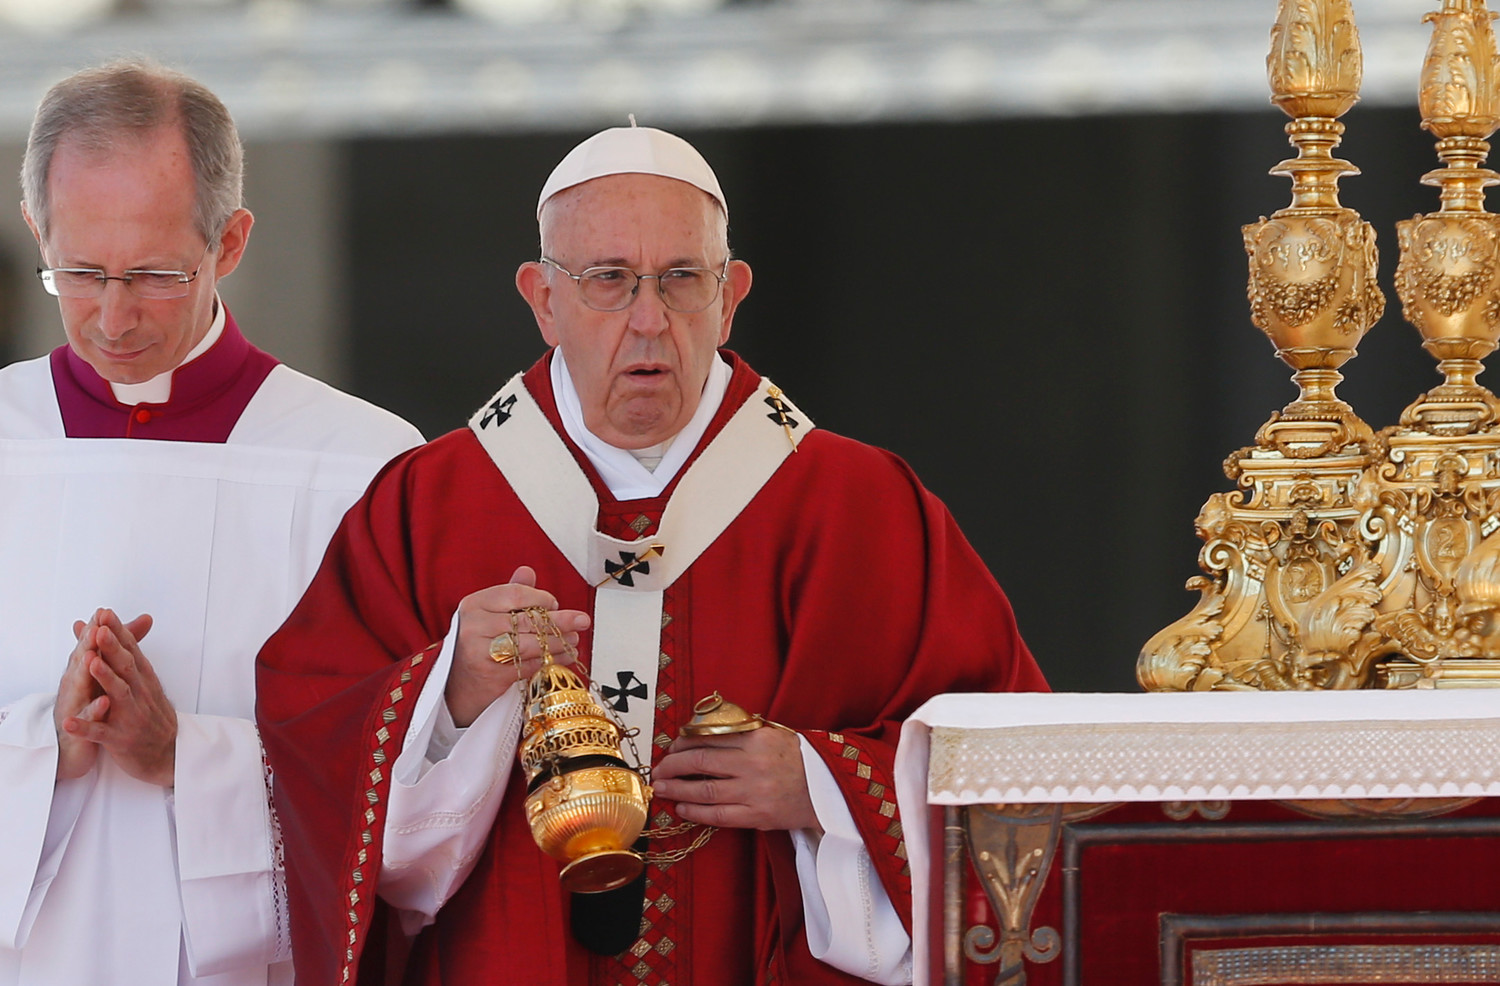 Pope Francis uses incense as he celebrates Mass marking the feast of Saints Peter and Paul in St. Peter's Square at the Vatican June 29. At the conclusion of the Mass the Pope presented palliums in boxes to dozens of new archbishops from around the world.